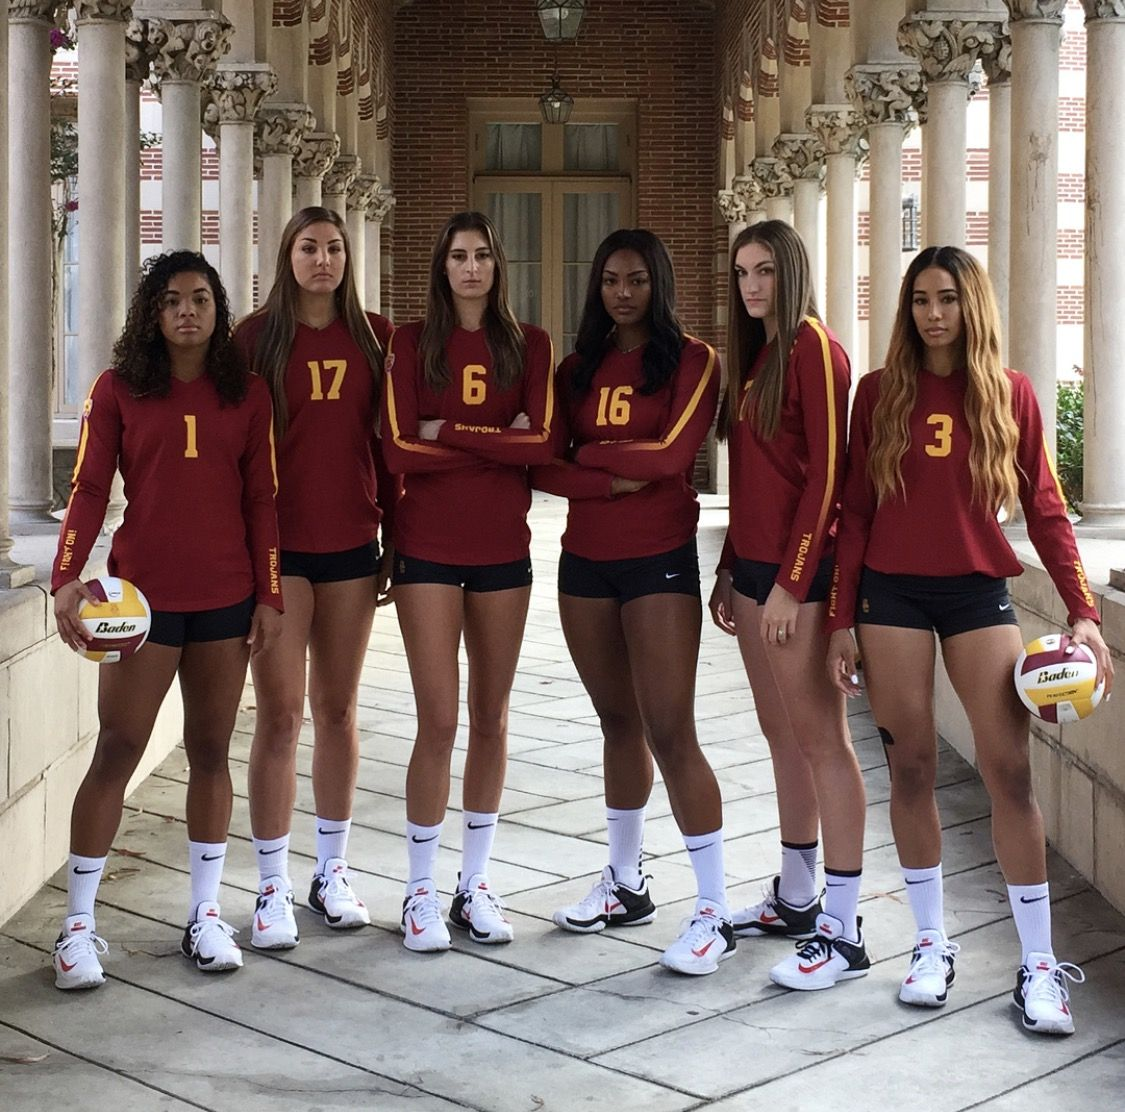 2017 Usc Women S Volleyball Front Line Fighton Female Volleyball Players Volleyball Uniforms Volleyball Team Pictures